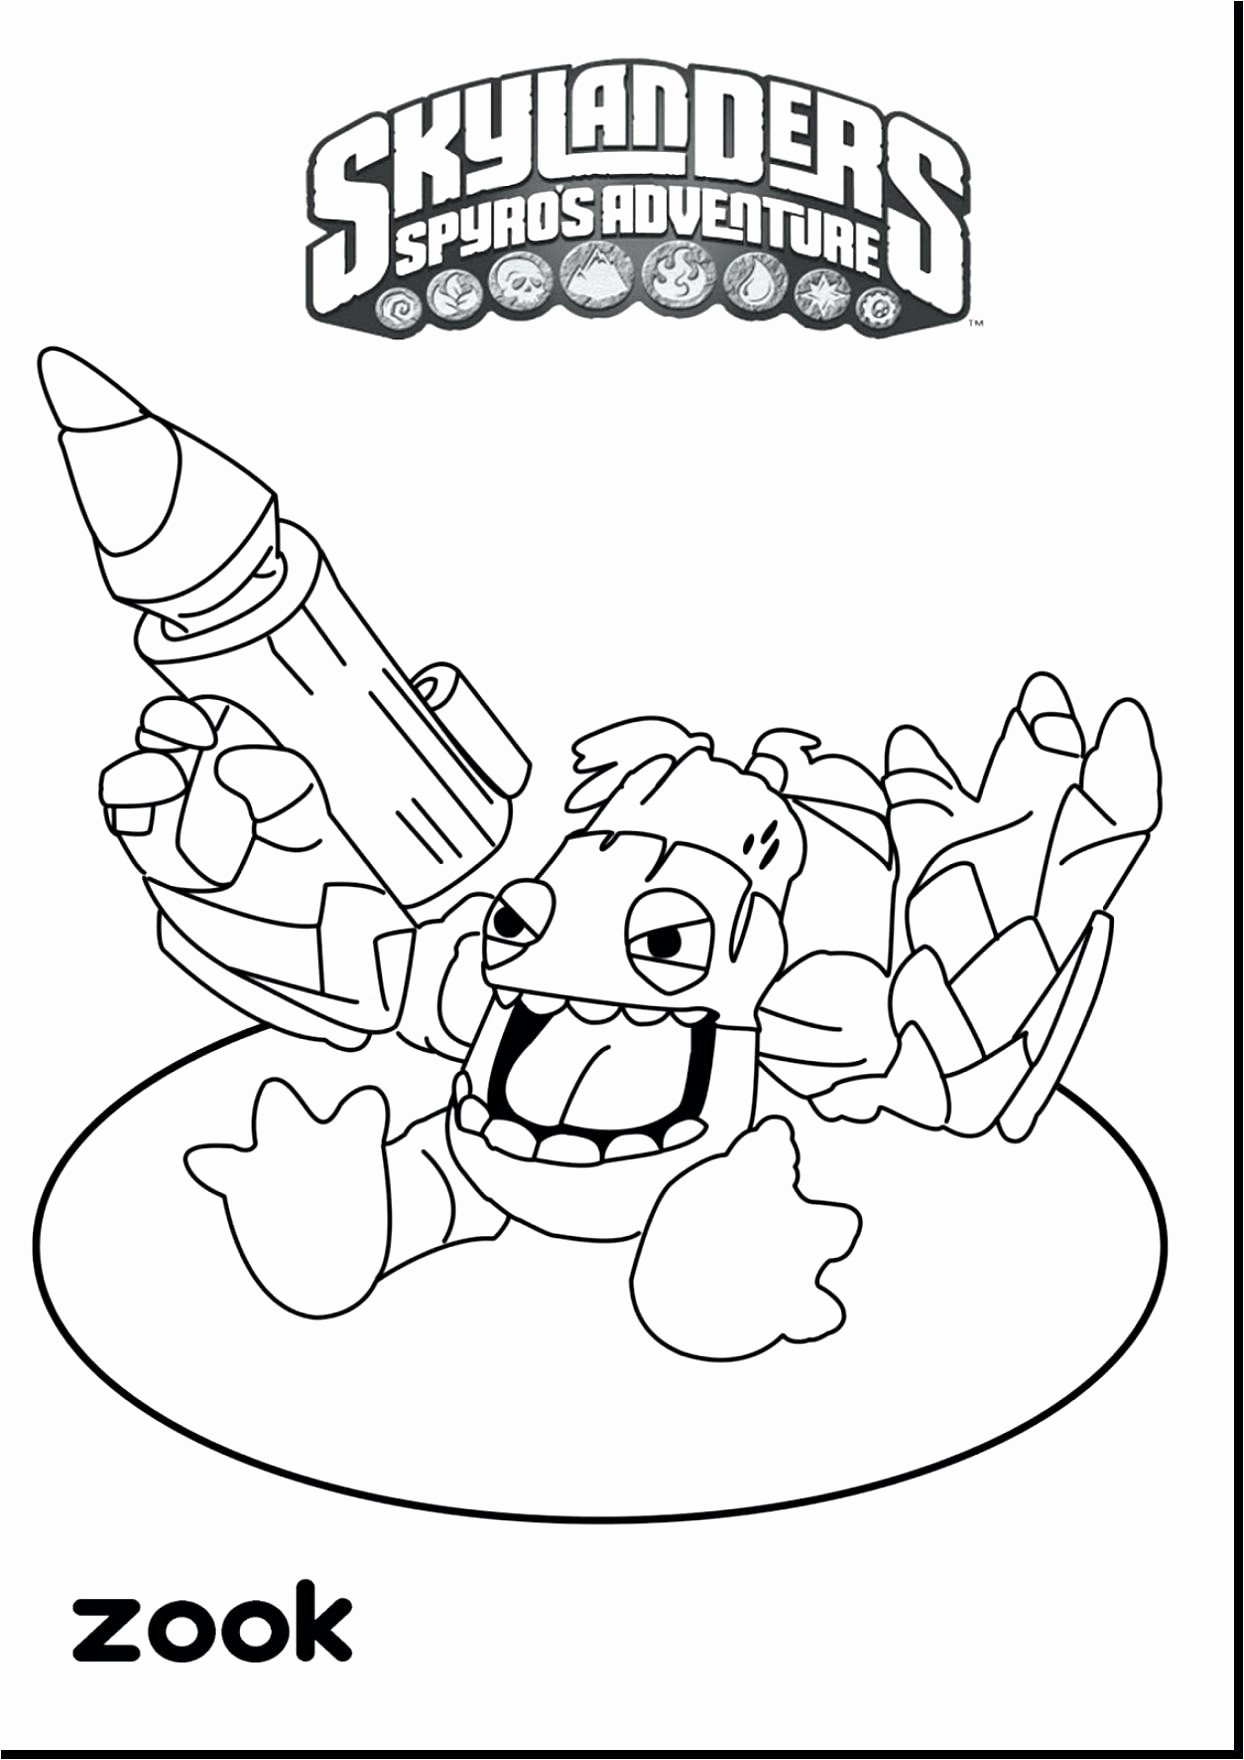 food pyramid coloring pages Collection-Cool Design Printable Coloring Pages New Awesome Print Out Coloring Sheet Design Cool Design Printable 4-d